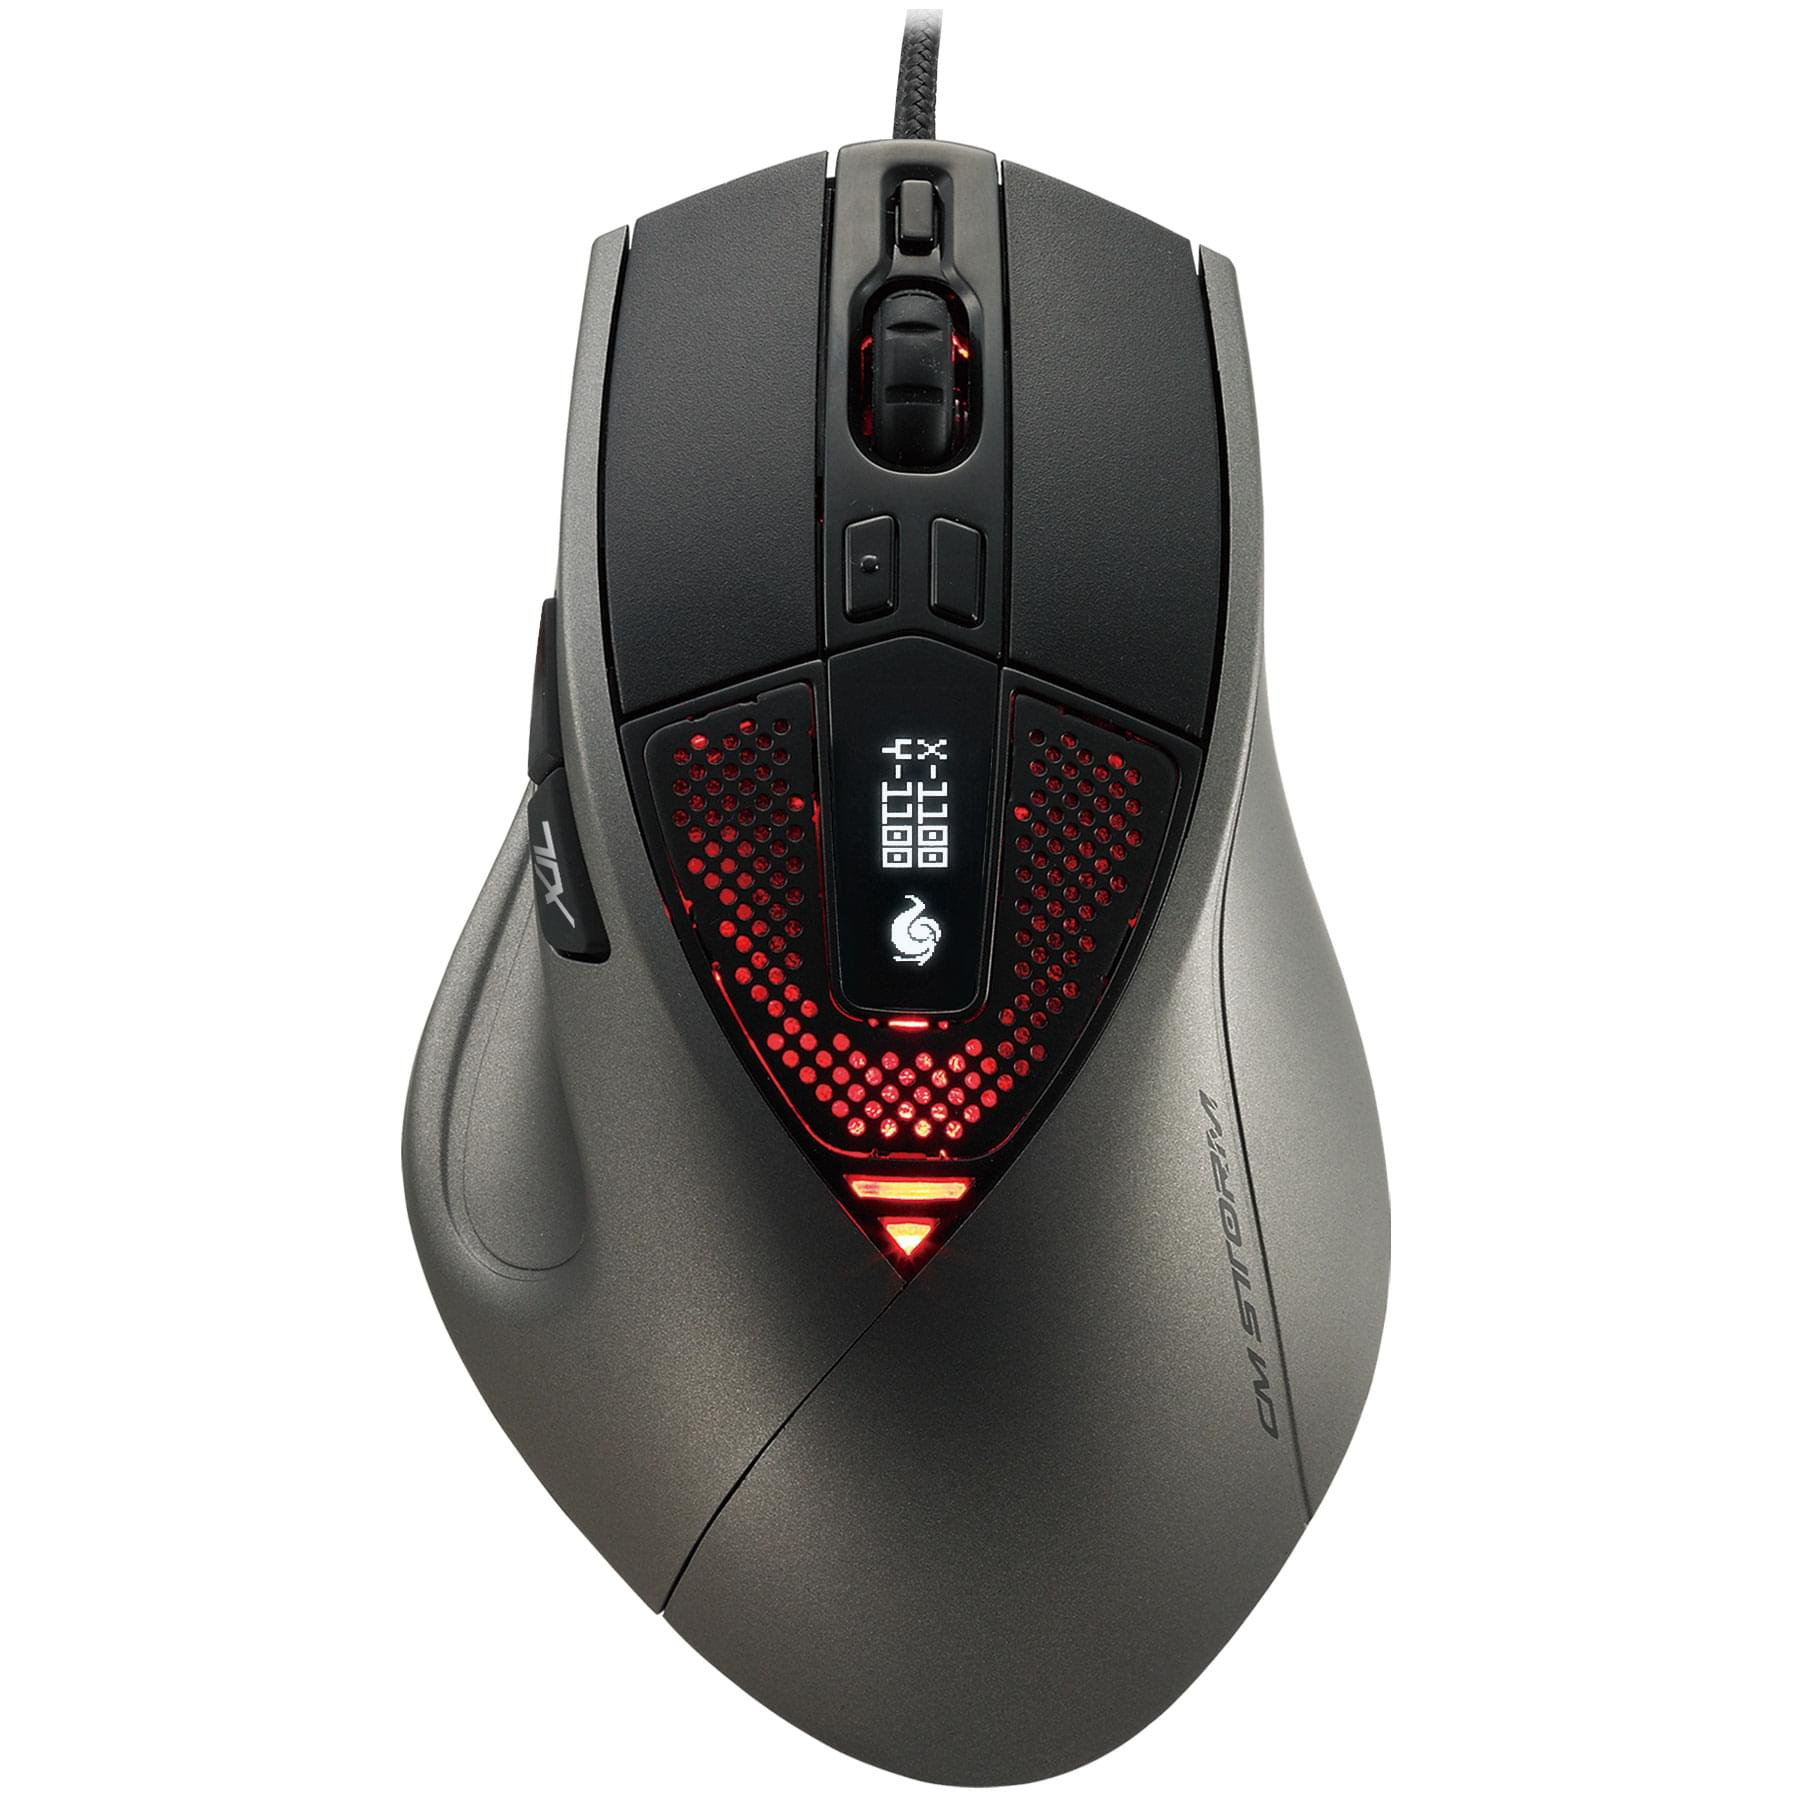 Cooler Master Souris PC Gamer Sentinel Advanced II - 0